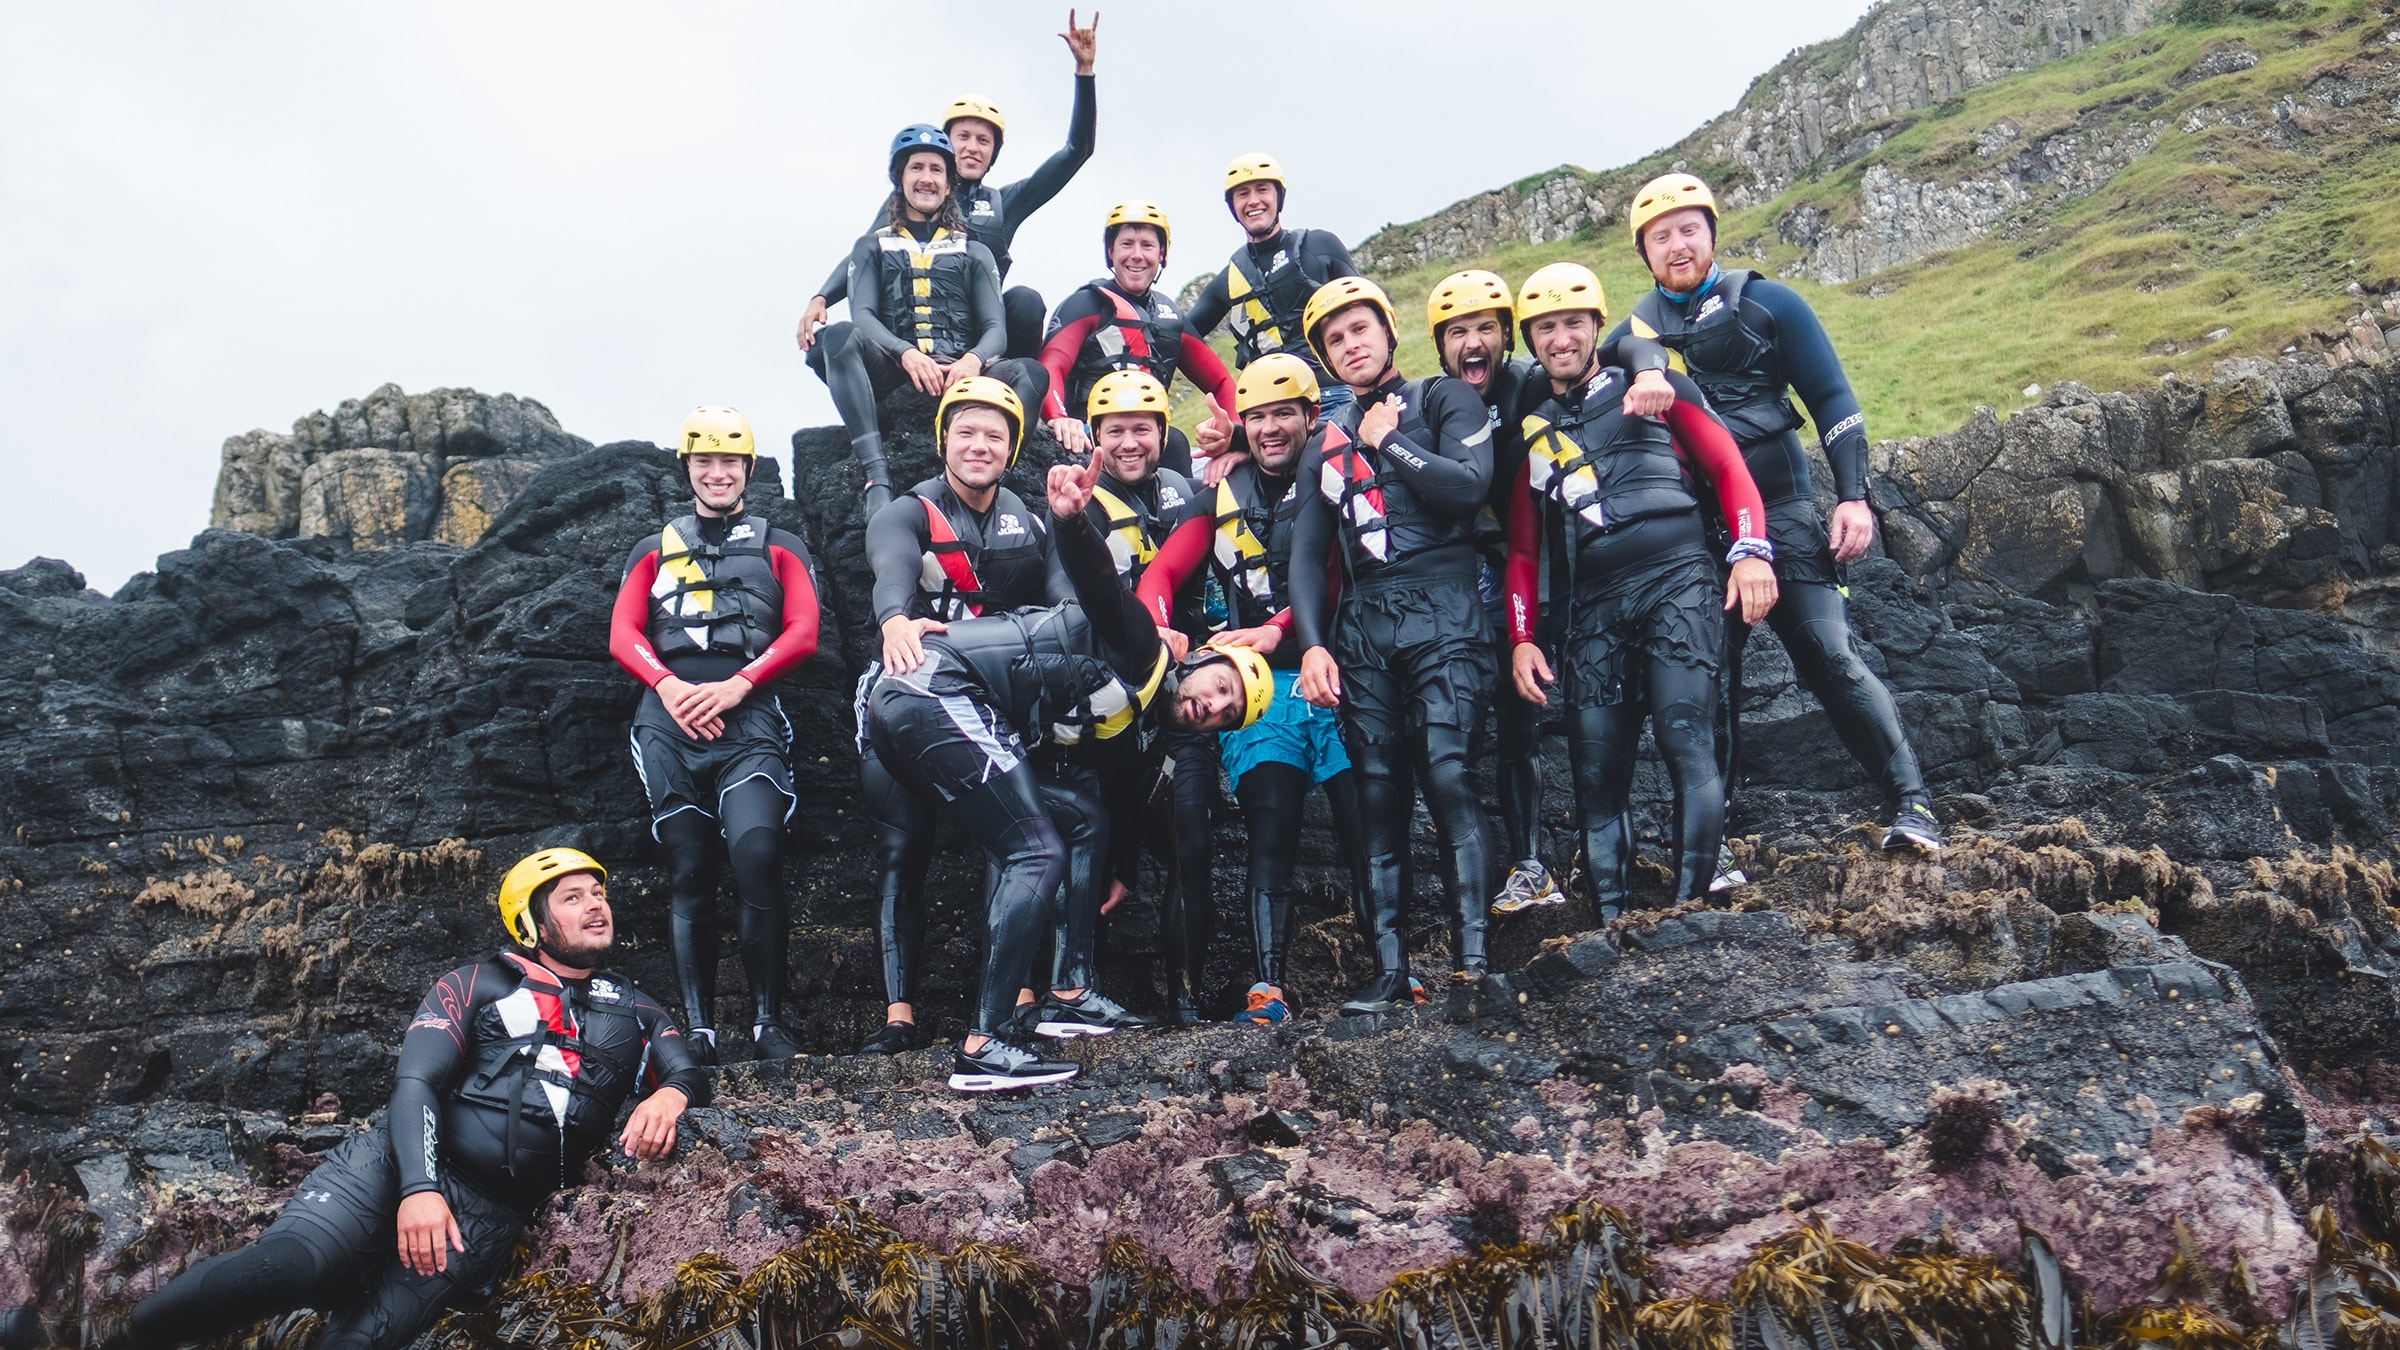 https://causewaycoasteering.com/wp-content/uploads/2020/07/groups-main_banner_2-2400x1350-min.jpg